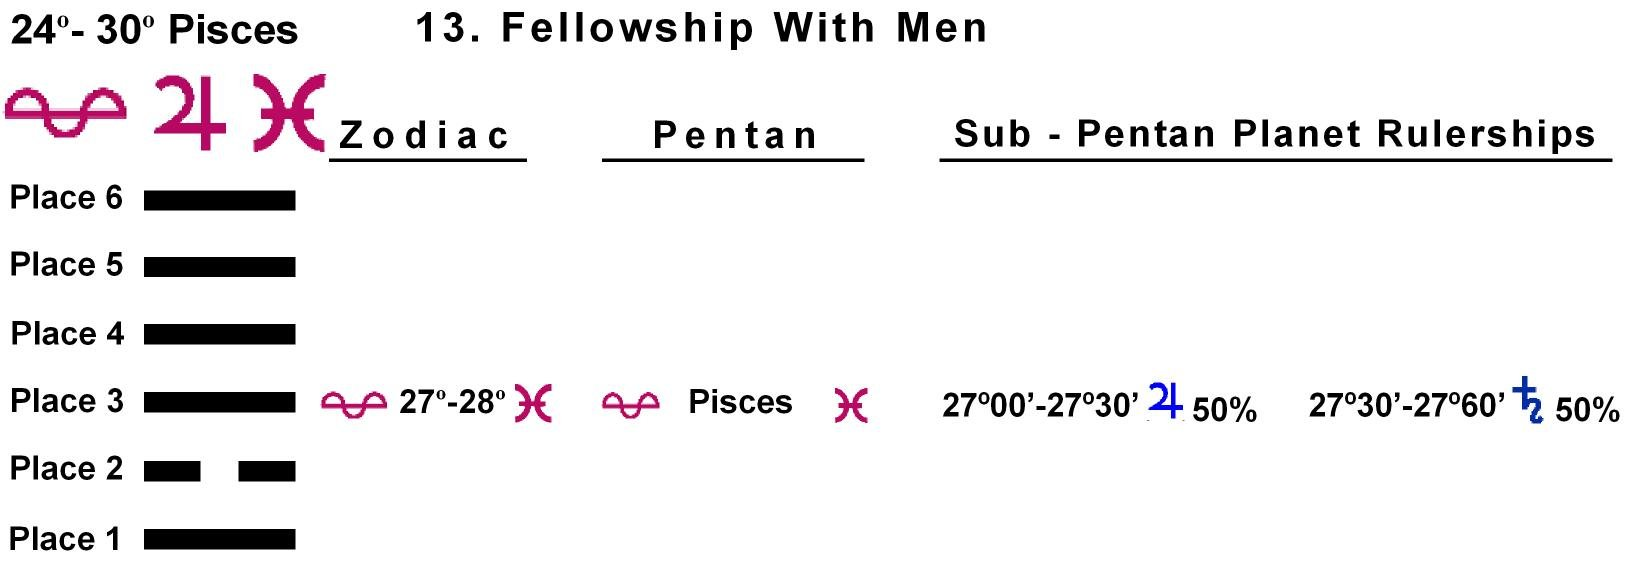 Pent-lines-12PI 27-28 Hx-13 Fellowship With Men